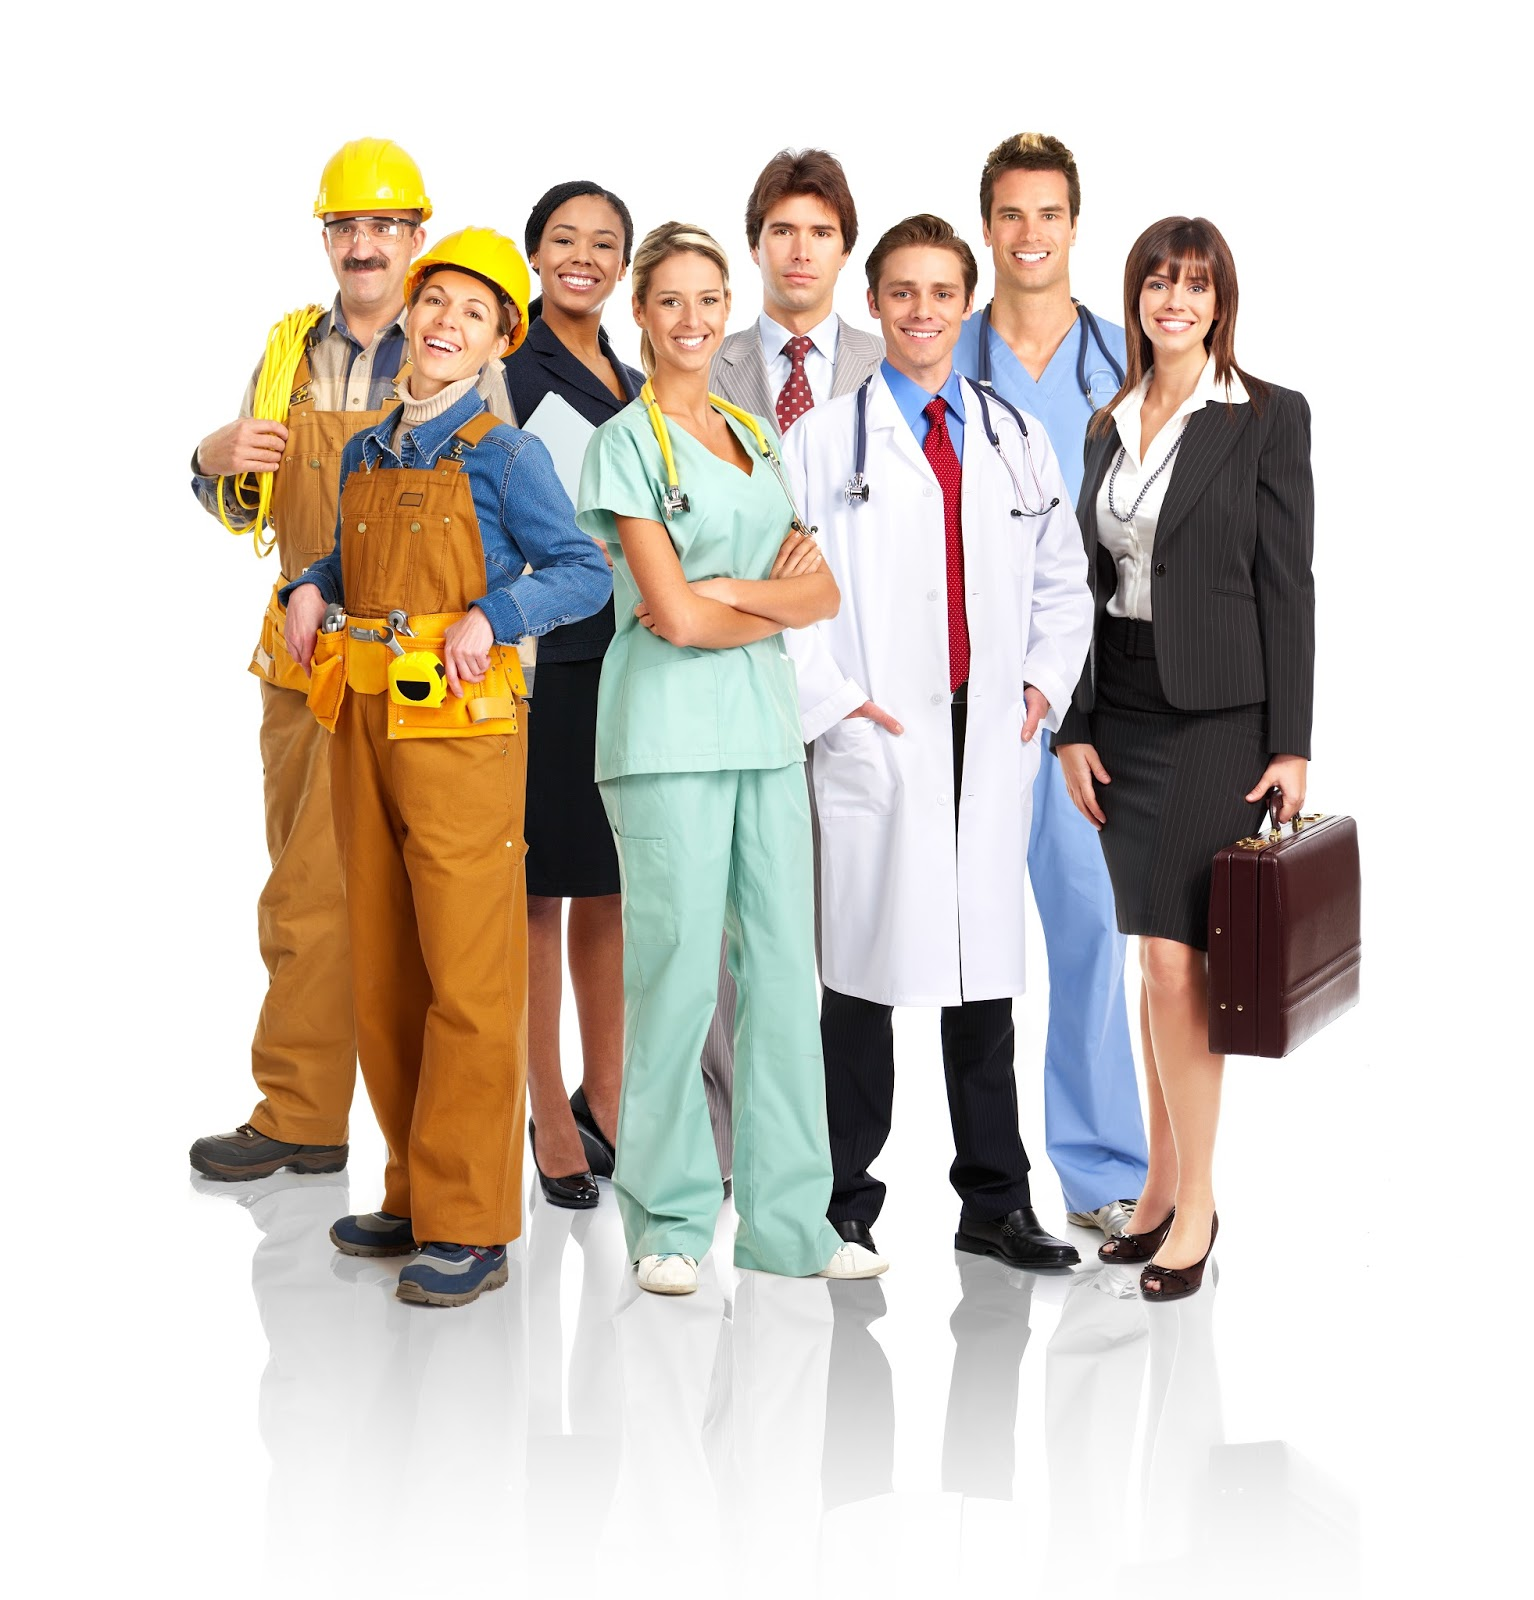 What Do You Need To Know About Medical Representative Roles And